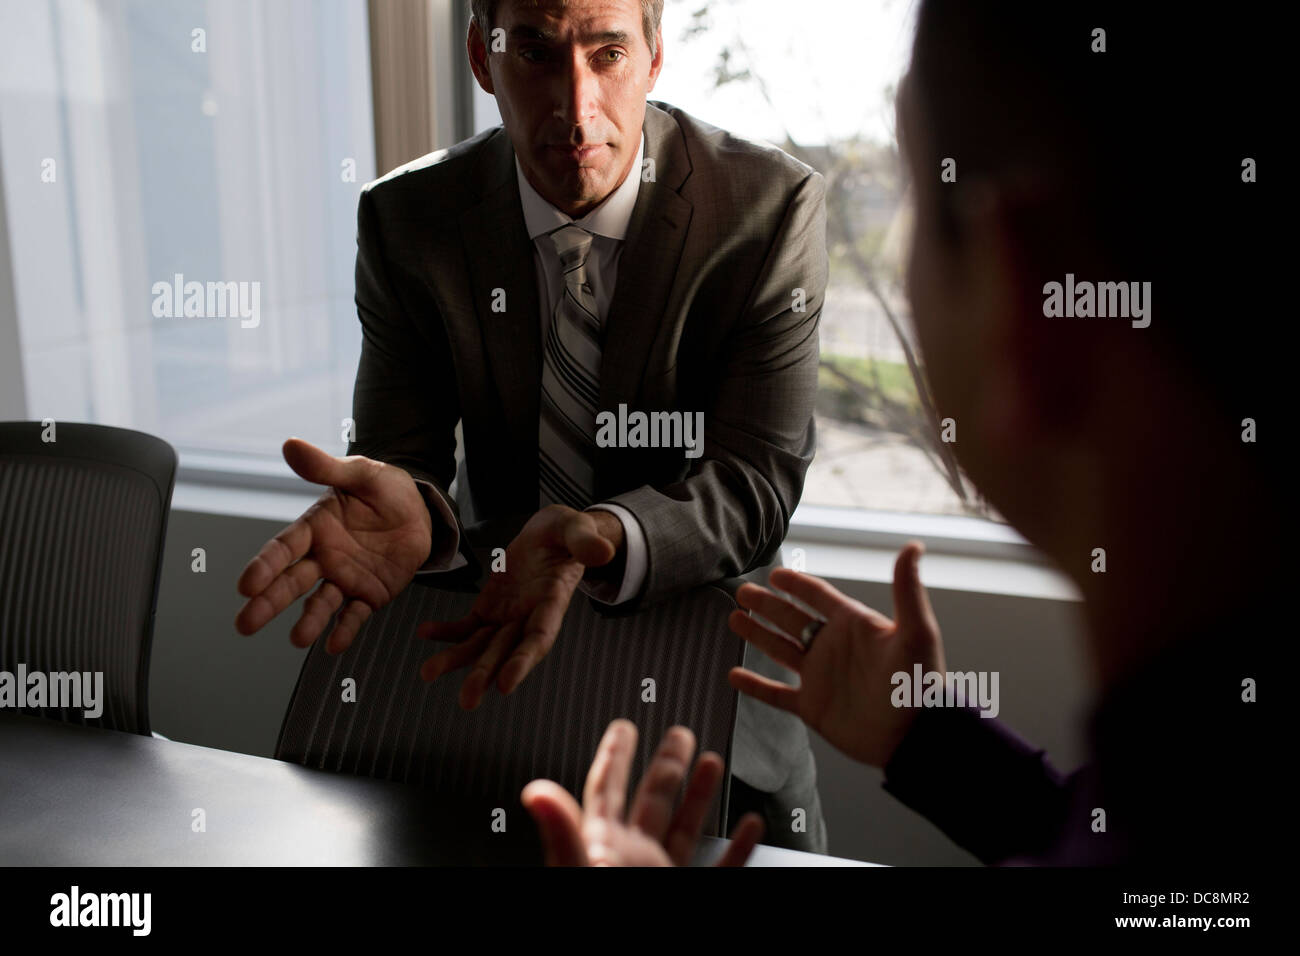 Two businessmen talking in a meeting room. - Stock Image